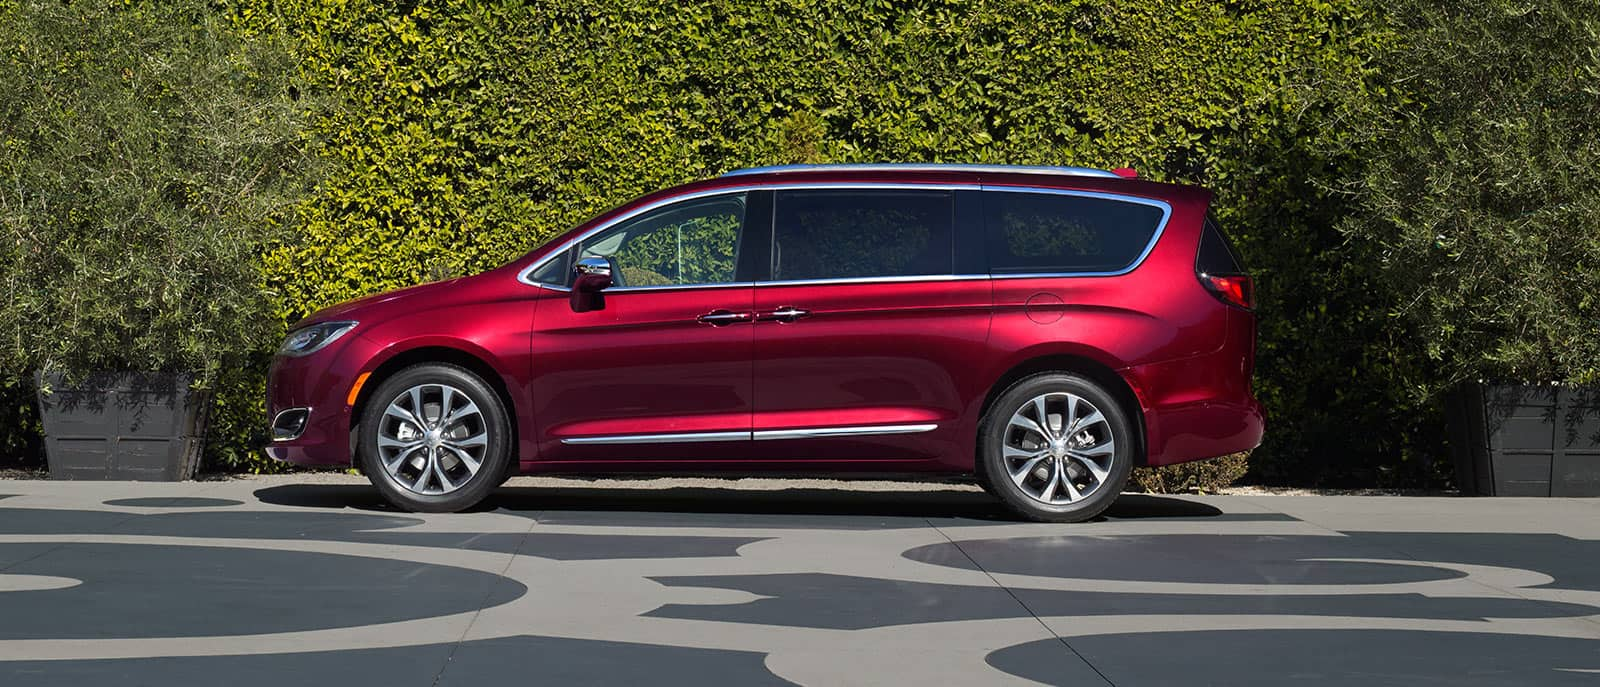 new 2017 chrysler pacifica for sale near detroit mi sterling heights mi lease or buy a new. Black Bedroom Furniture Sets. Home Design Ideas